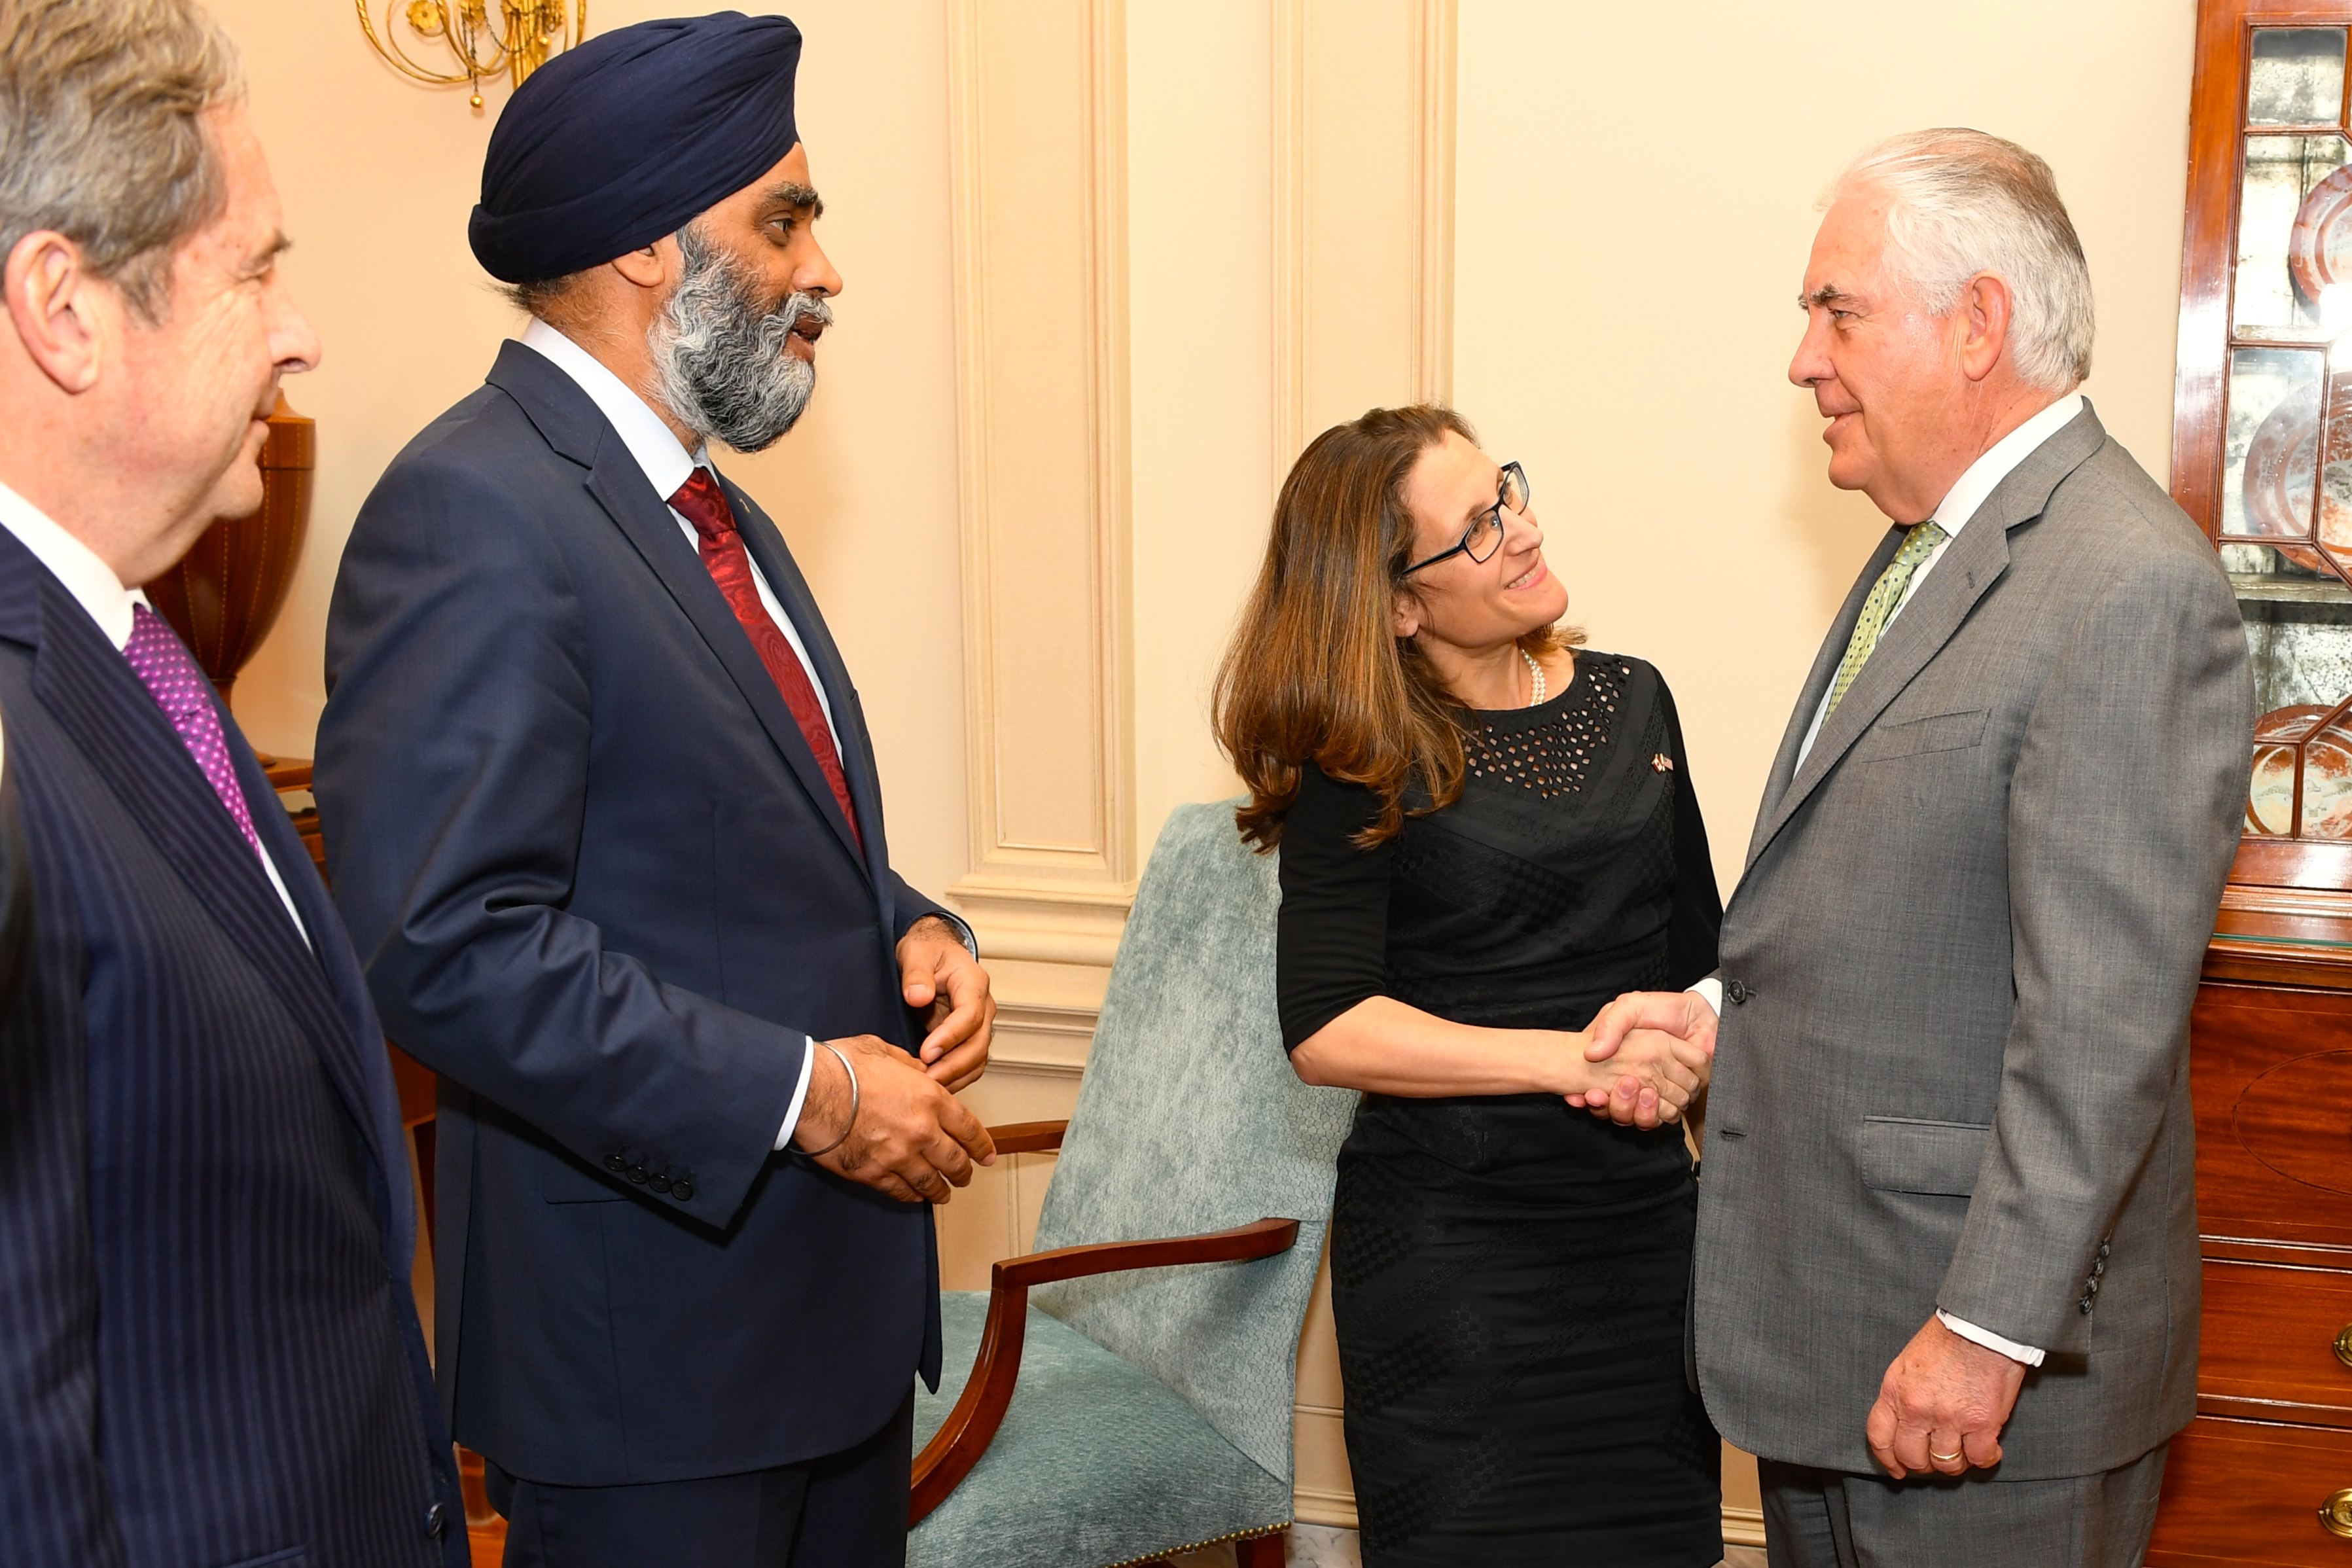 Secretary Tillerson with Canadian Foreign Minister Chrystia Freeland and Canadian Defense Minister Harjit Sajjan